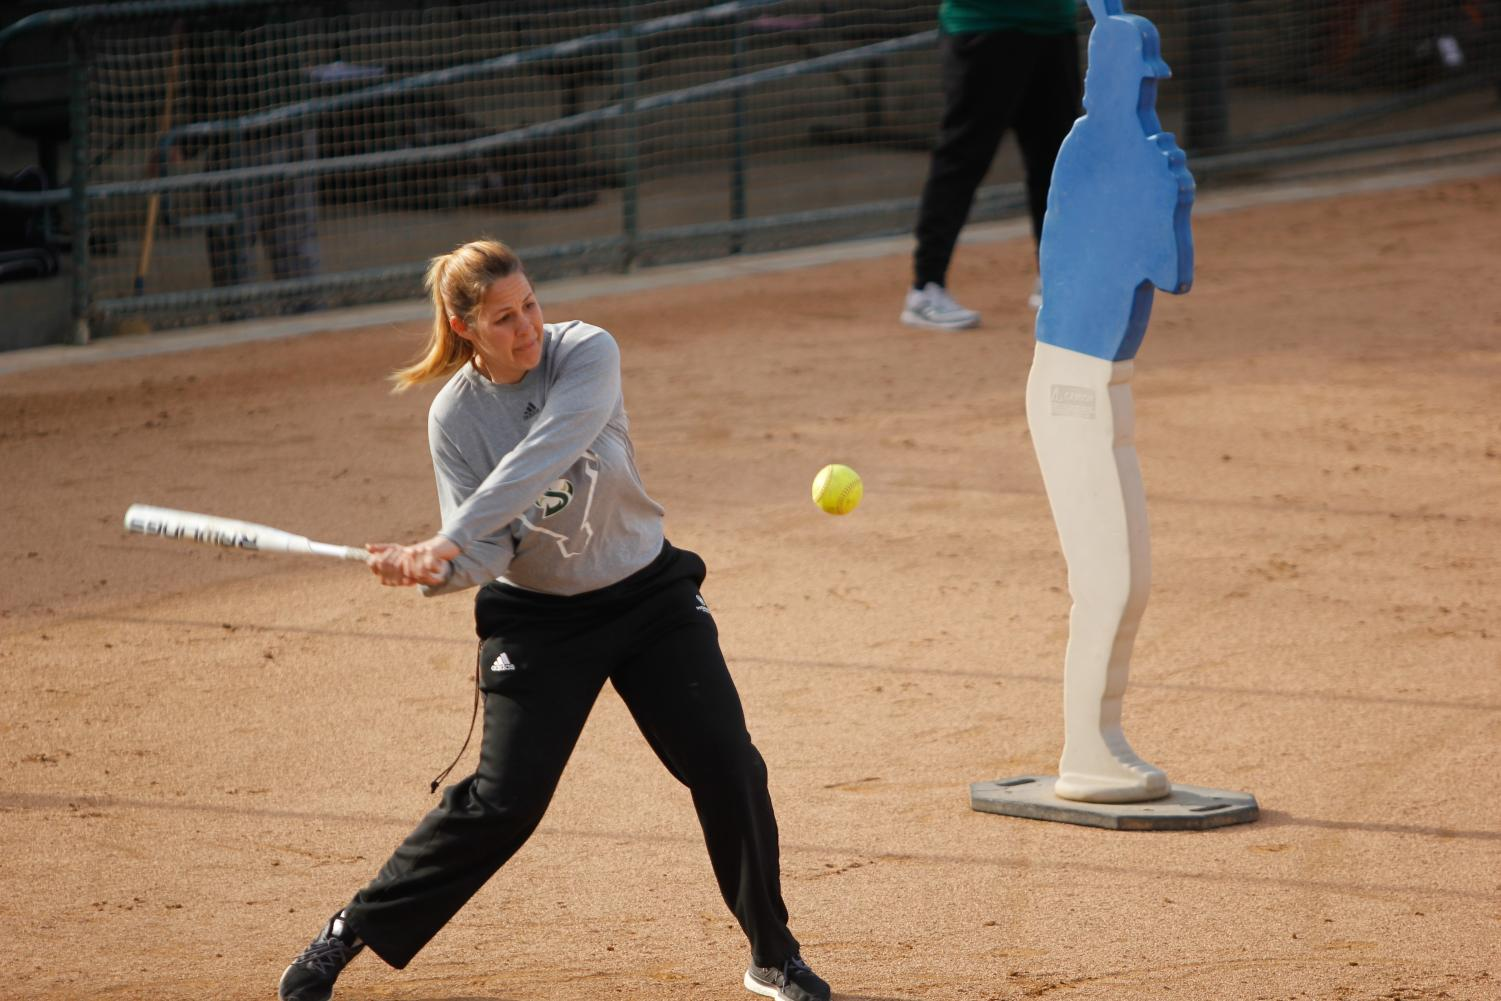 Coach Lori Perez hitting a softball while conducting fielding drills during practice at Shea Stadium on Jan. 31, 2018. Perez is one of the only two women head coaches at Sac State.